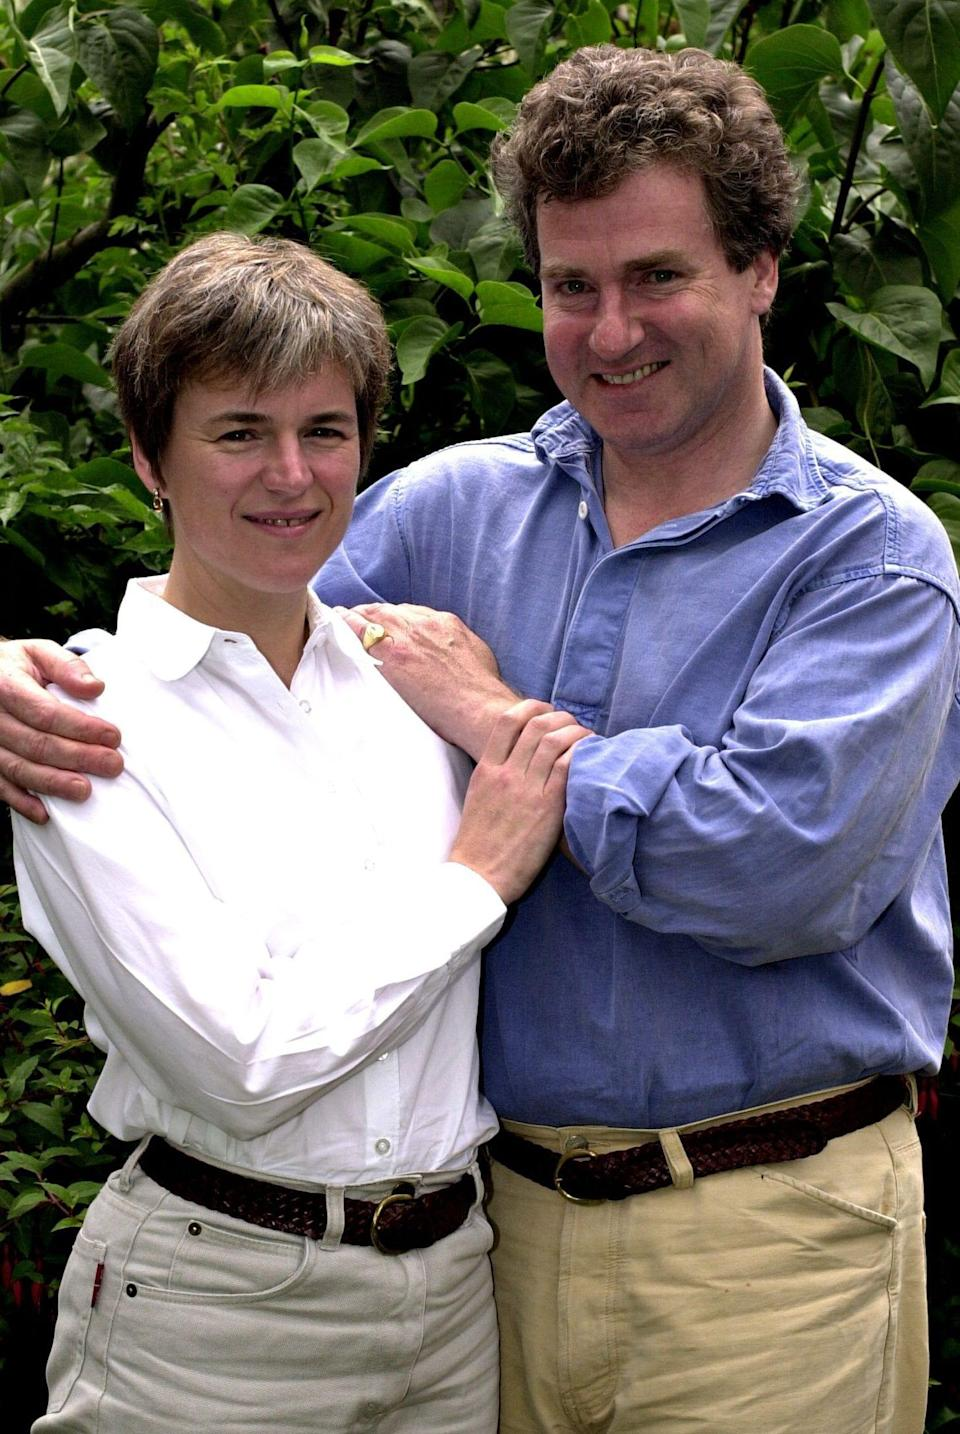 Ainsworth and his wife Claire in 2002 - Lynn Hilton/Mail On Sunday/Shutterstock